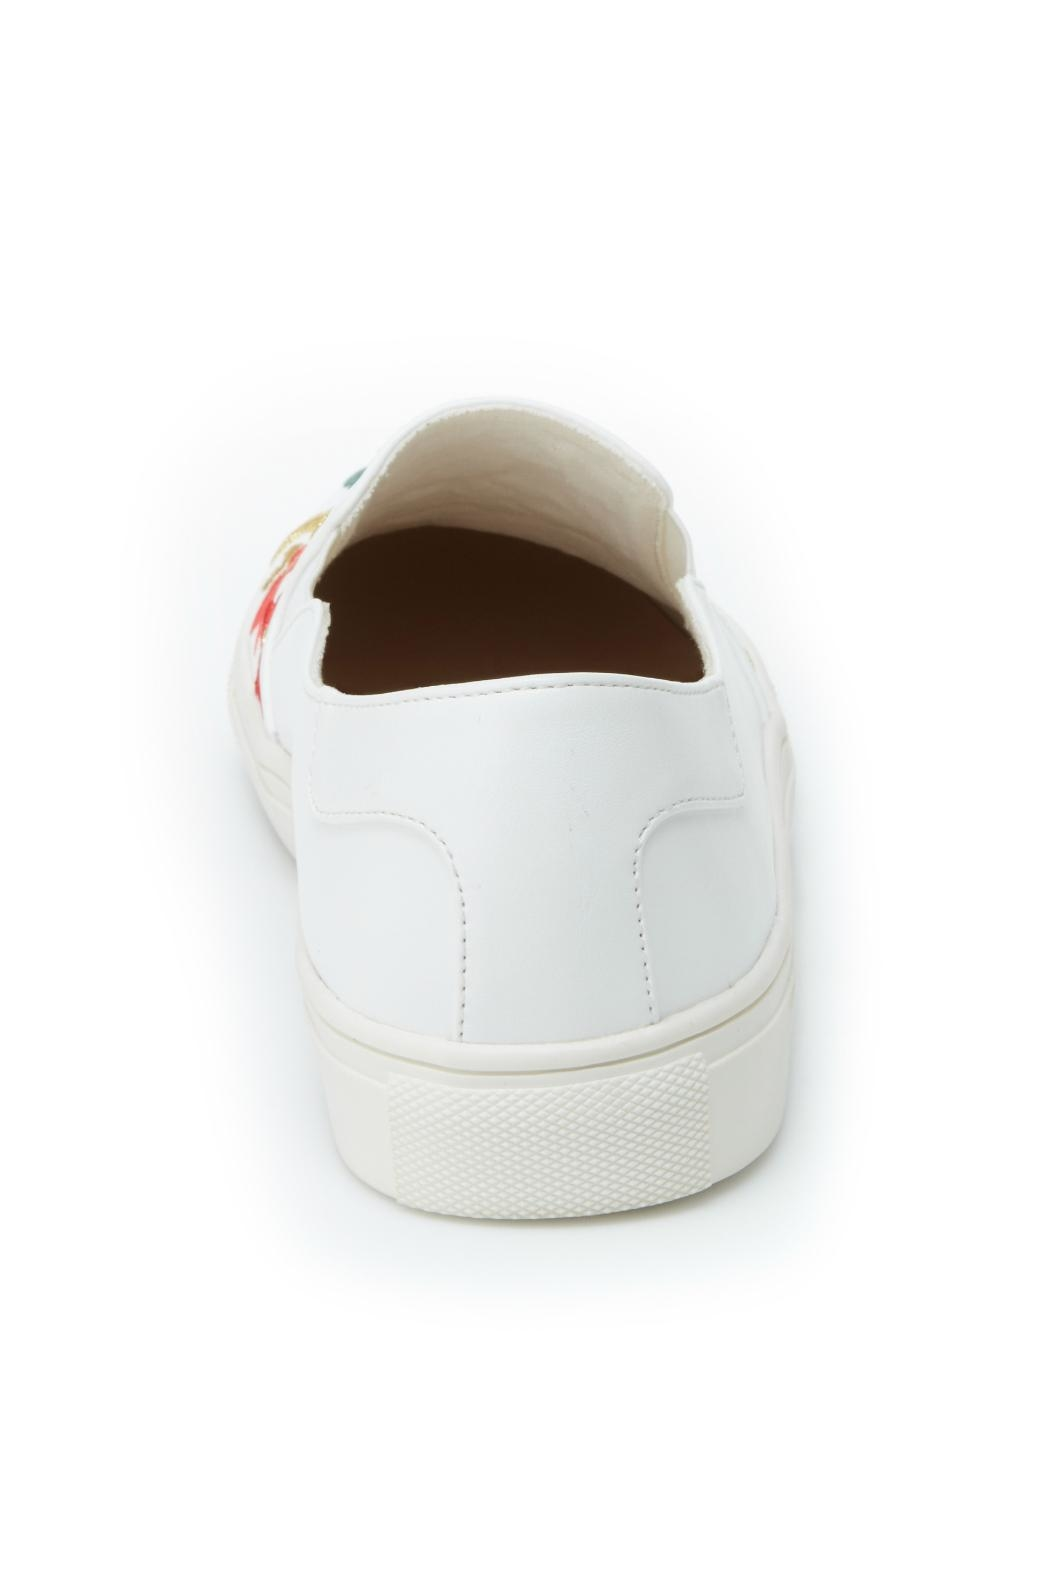 Nanette Lepore Whimsical Embroidered Sneaker - Side Cropped Image